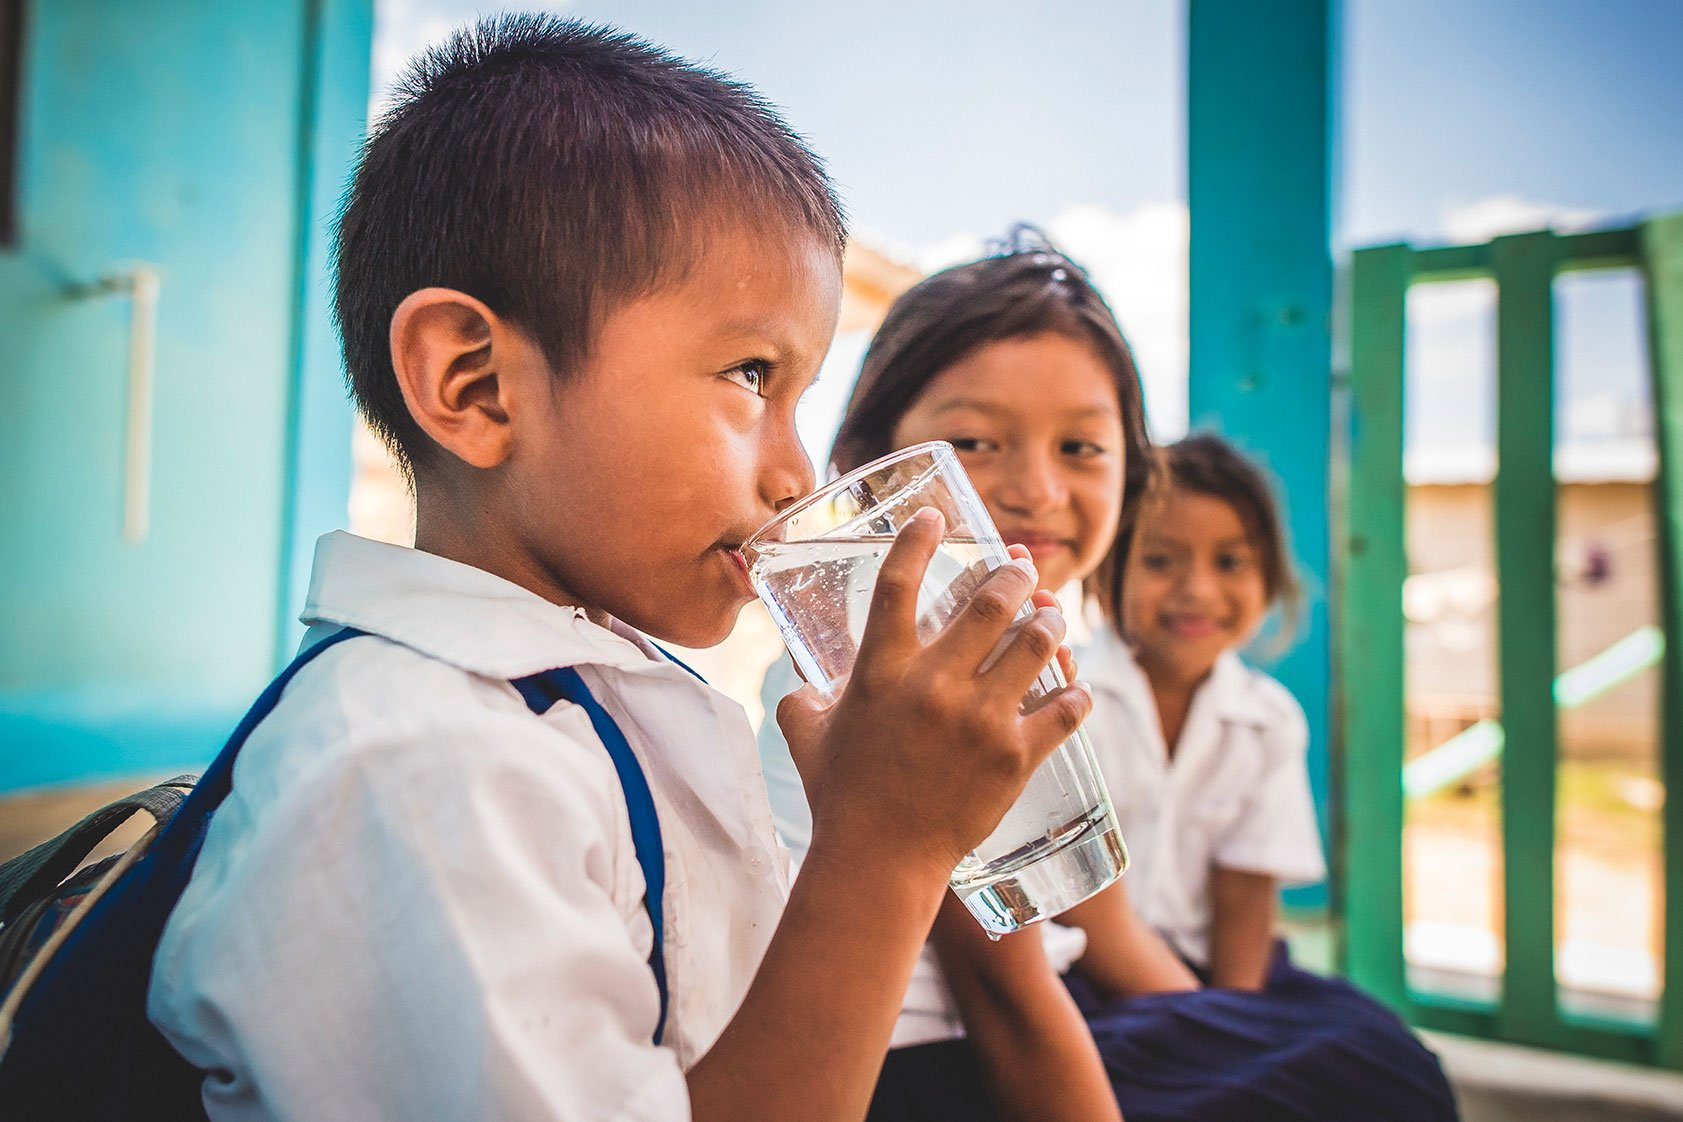 A young boy enjoys safe water in Honduras thanks to Pentair and Water Mission.